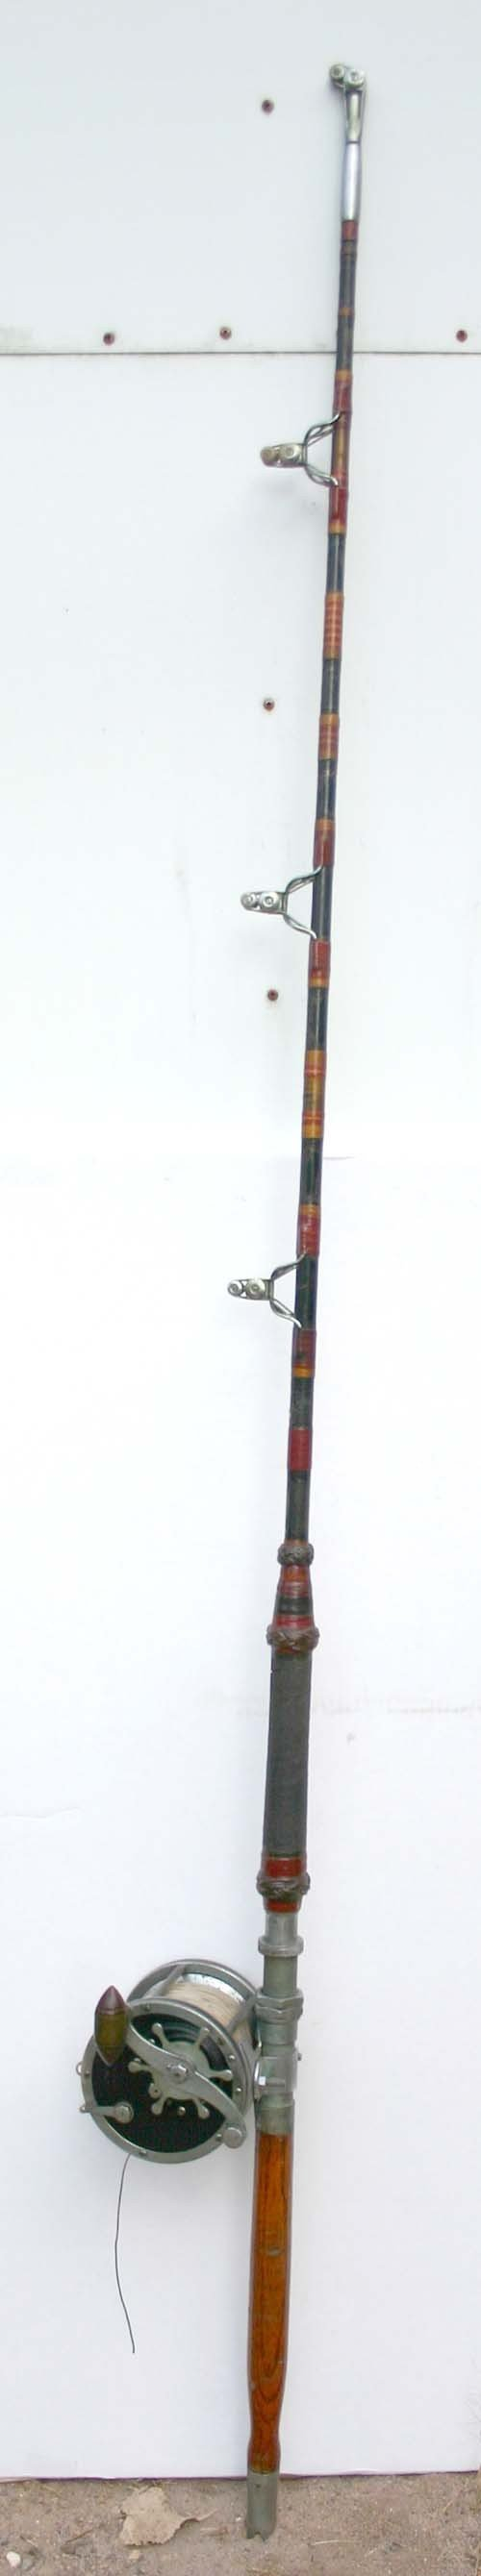 18: large antique salt water fishing pole and reel - po